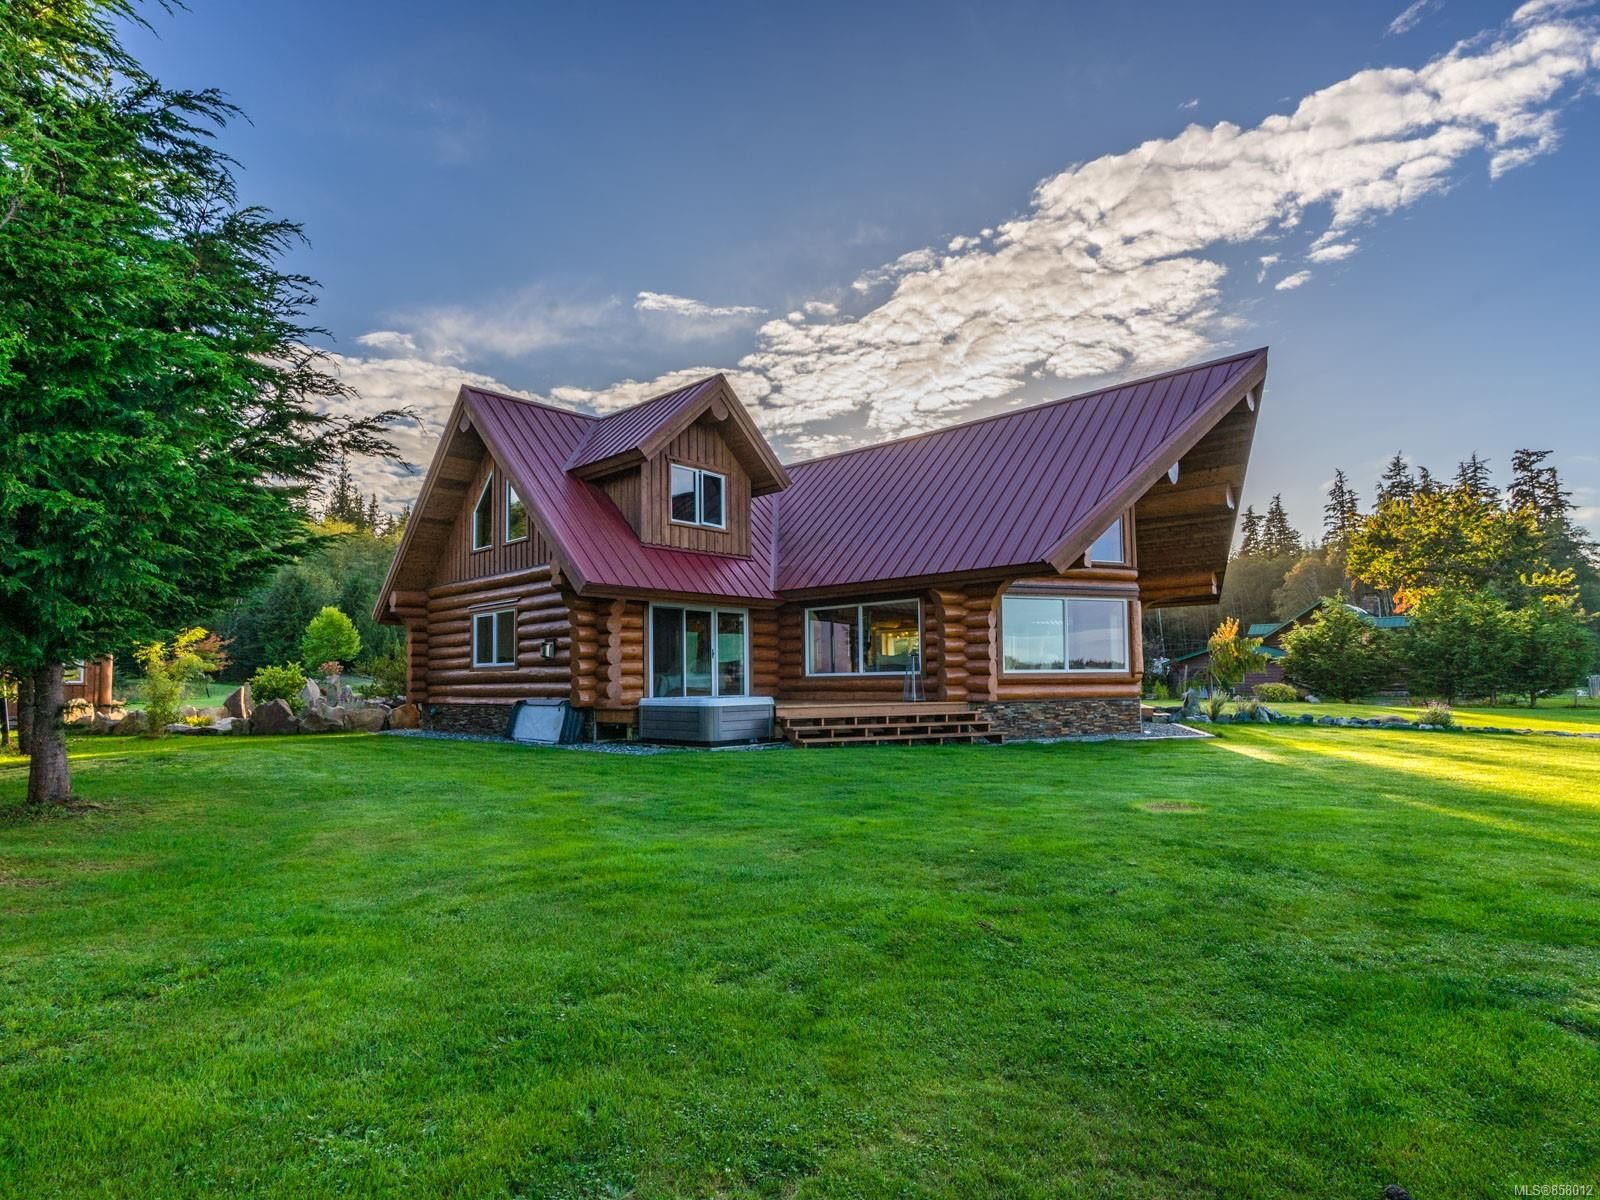 Photo 82: Photos: 6030 MINE Rd in : NI Port McNeill House for sale (North Island)  : MLS®# 858012